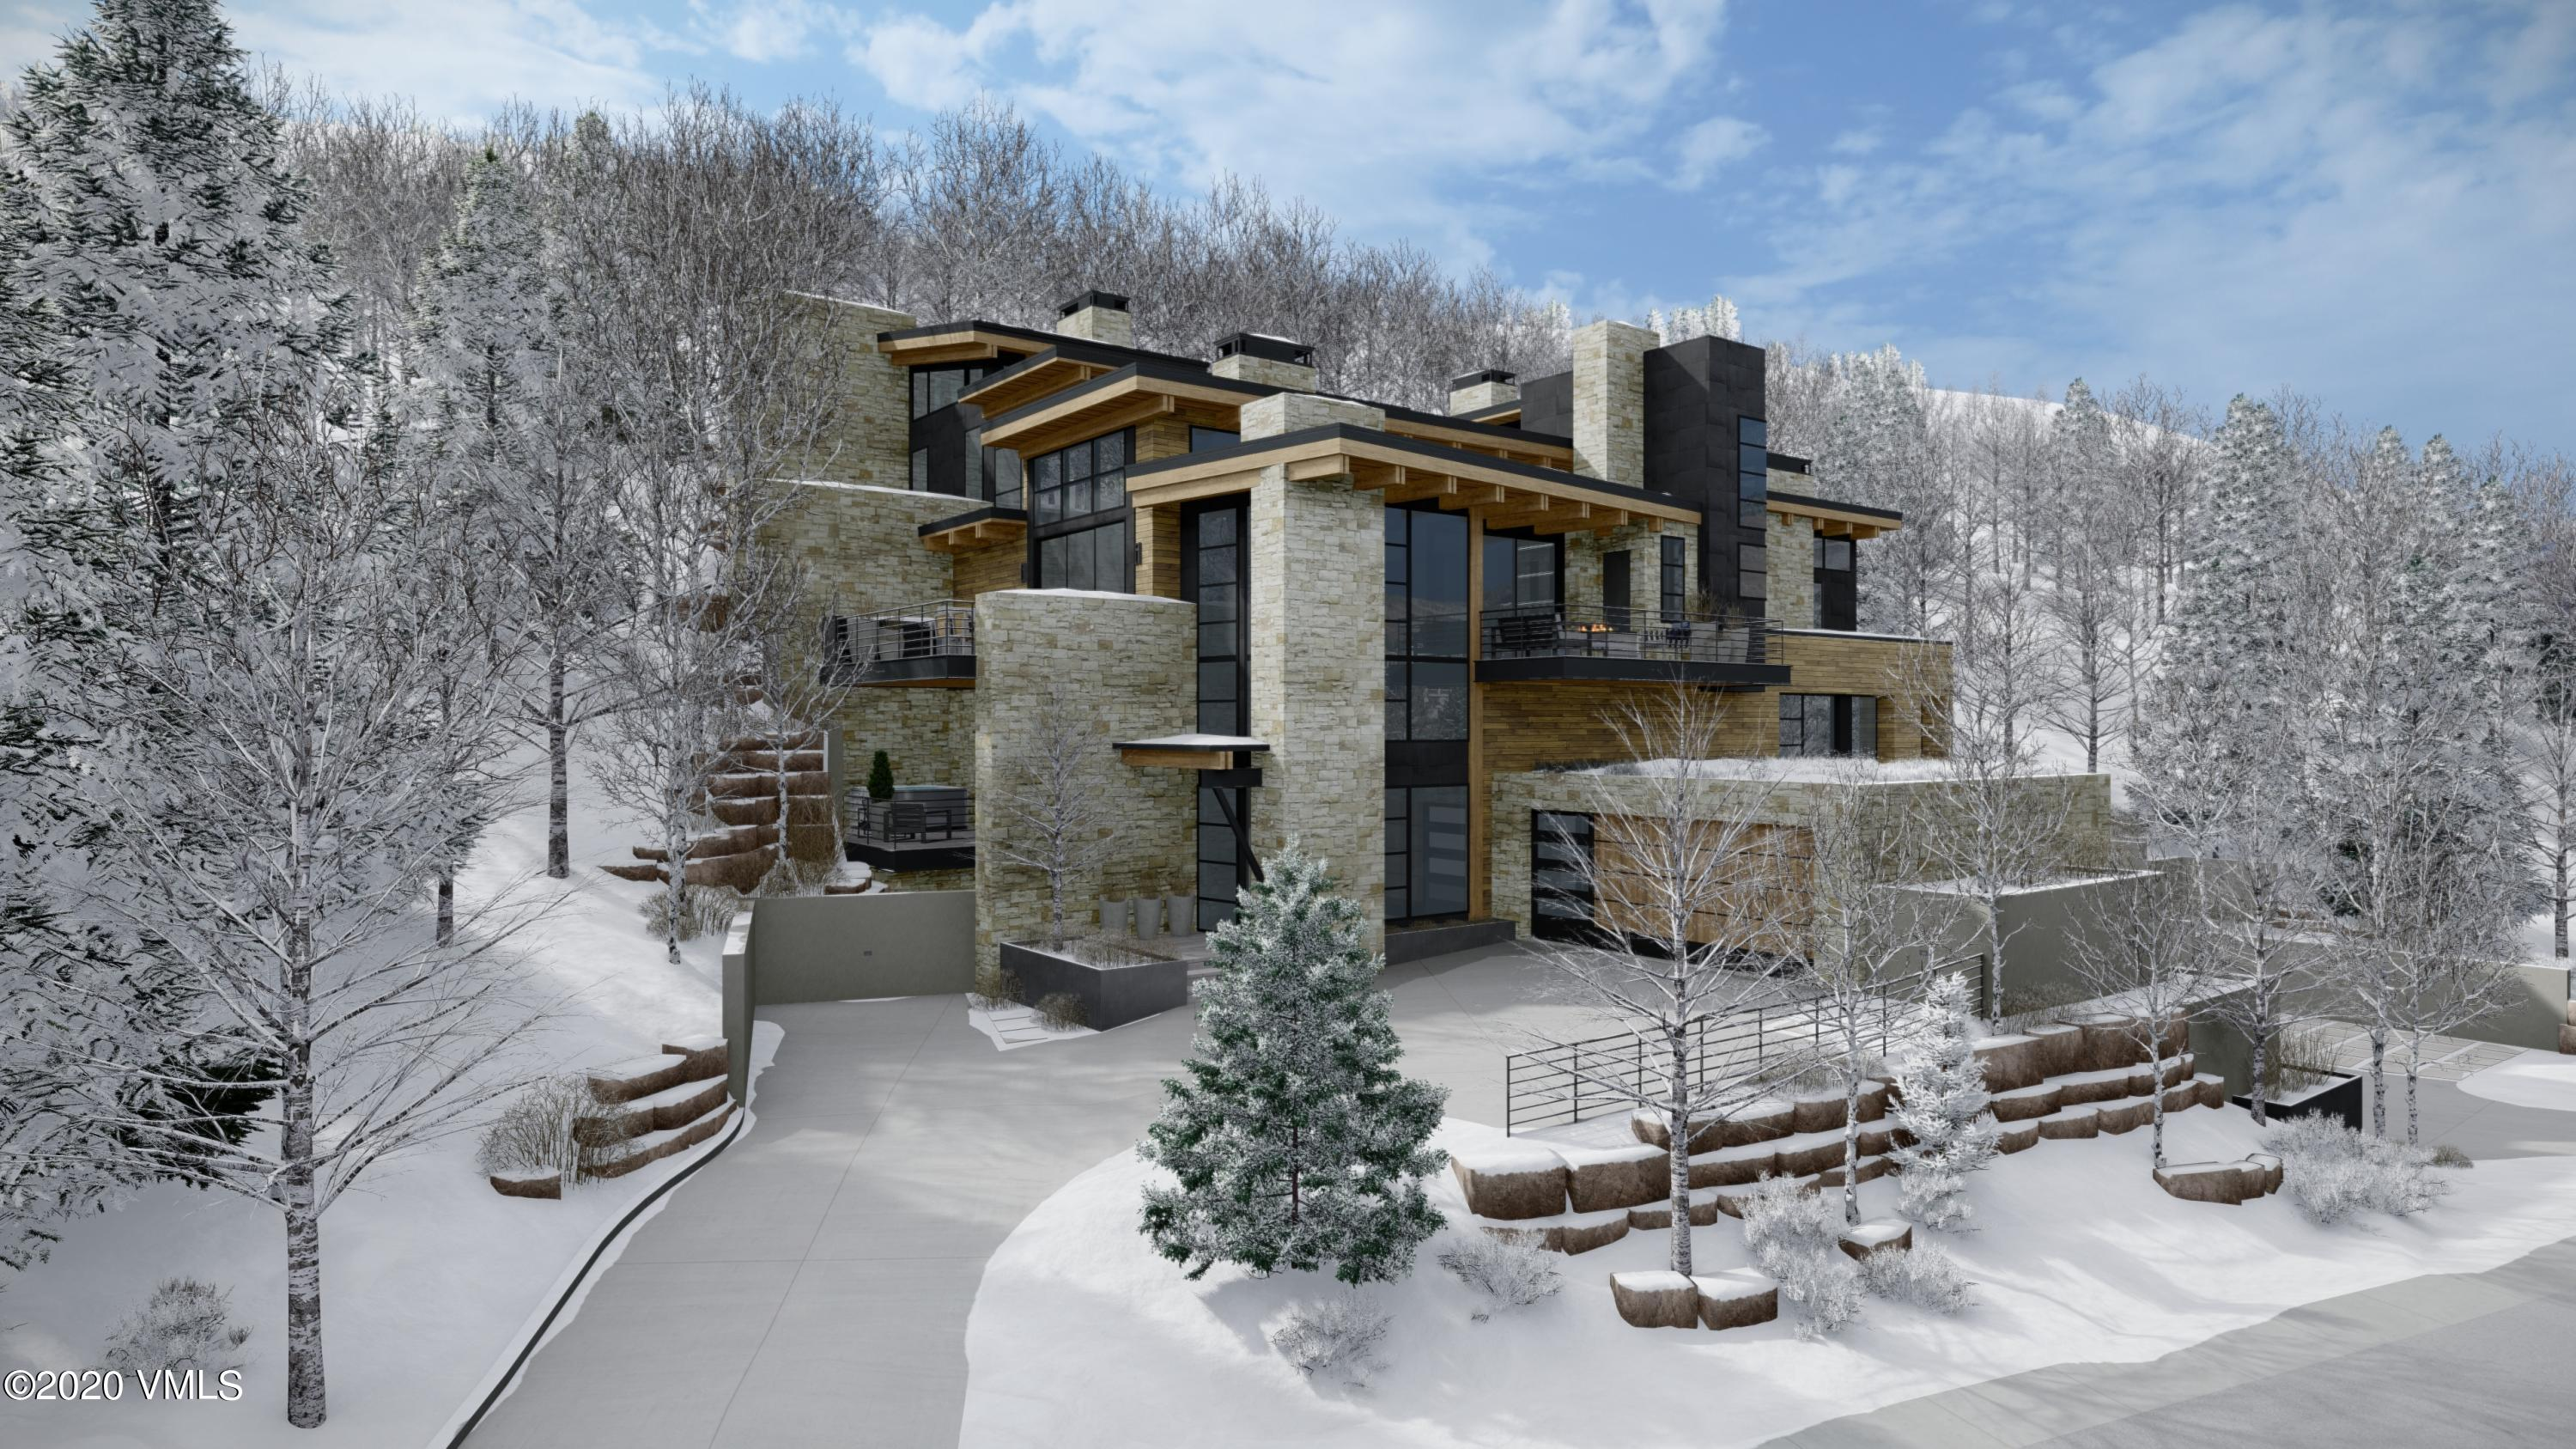 Rare opportunity to own a new construction, mountain contemporary home on the highly coveted Forest Road in Vail. Designed by Kyle Webb and built by Paragon Homes, Inc., this home offers unparalleled luxury, craftsmanship and sophistication. This modern mountain retreat features a warm aesthetic with elements of wood and stone used throughout and defined clean lines. Grand glass walls harness breathtaking views of the surrounding mountains, woodland and village of Lionshead. Located approximately 500 feet from the Born Free ski run, the location is prime especially for those that love tree skiing or for those who wish to briefly ski down to the Lionshead Gondola, about 600 feet away. Encompassing 4,454 square feet of living space, there are four bedrooms, five bathrooms and several outdoor patios.  With the driveway and all deck surfaces heated efficiently, all will enjoy the beauty of the outdoor dining area year-round. The refined kitchen with gorgeous Italian cabinetry and state of the art appliances open to the living and dining areas. With elevated views, sun-filled interiors, this open floorplan masterfully accommodates for entertaining and family fun. Offering four levels of luxurious living, every room is an experience in and of itself with excellent views and attention to detail. The master bedroom was designed to provide ultimate privacy while still encapsulating the beauty of the outdoor landscape with its own spacious patio and surrounding aspen trees. Enter the mudroom after a day of skiing Vail's world-famous powder or hiking in the White River National Forest. Outfitted with built-in ski racks, cabinets, boot dryers and shelving, you can easily organize gear and equipment for family & friends. Nestled in the mountainside, enjoy this new mountain-chic architecture that is luxurious, yet inviting for your family & guests to enjoy. Estimated completion January 2022.Please view mls-670.ForestRoadLuxury.com for complete details. Note, the taxes & exact acreage will change once subdivided.